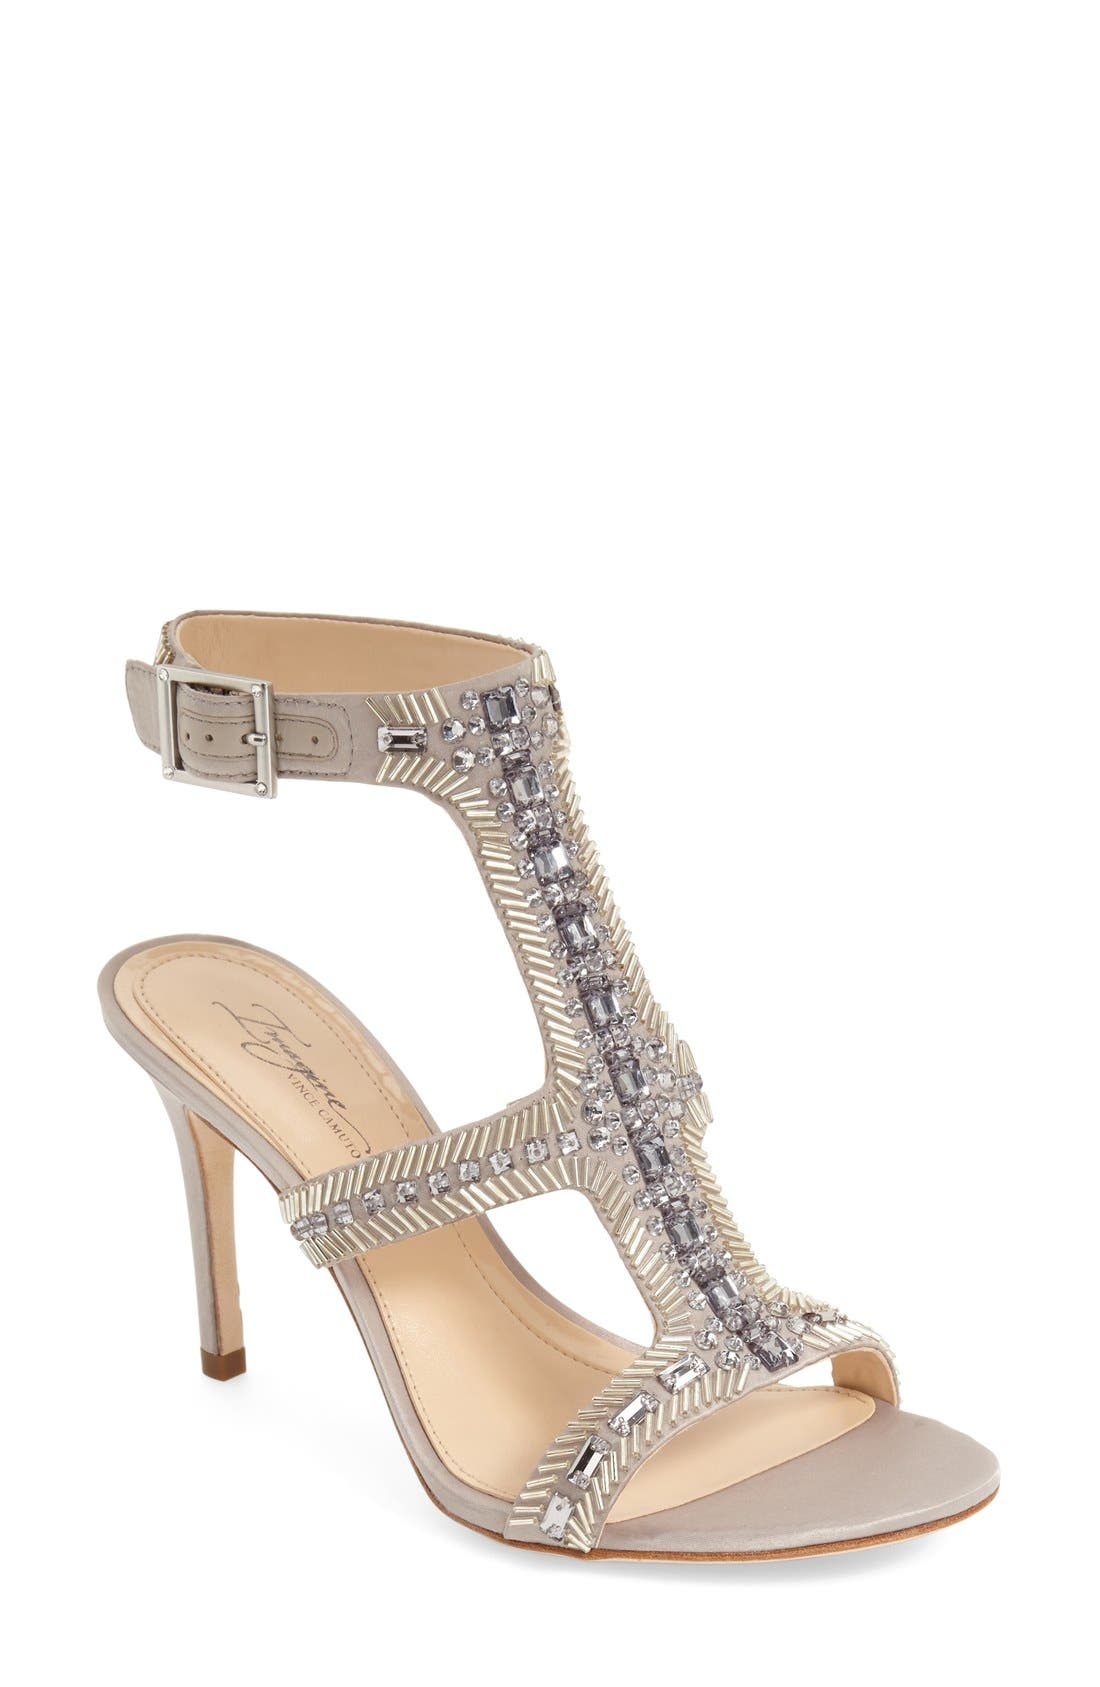 Alternate Image 1 Selected - Imagine Vince Camuto 'Price' Beaded T-Strap Sandal (Women)